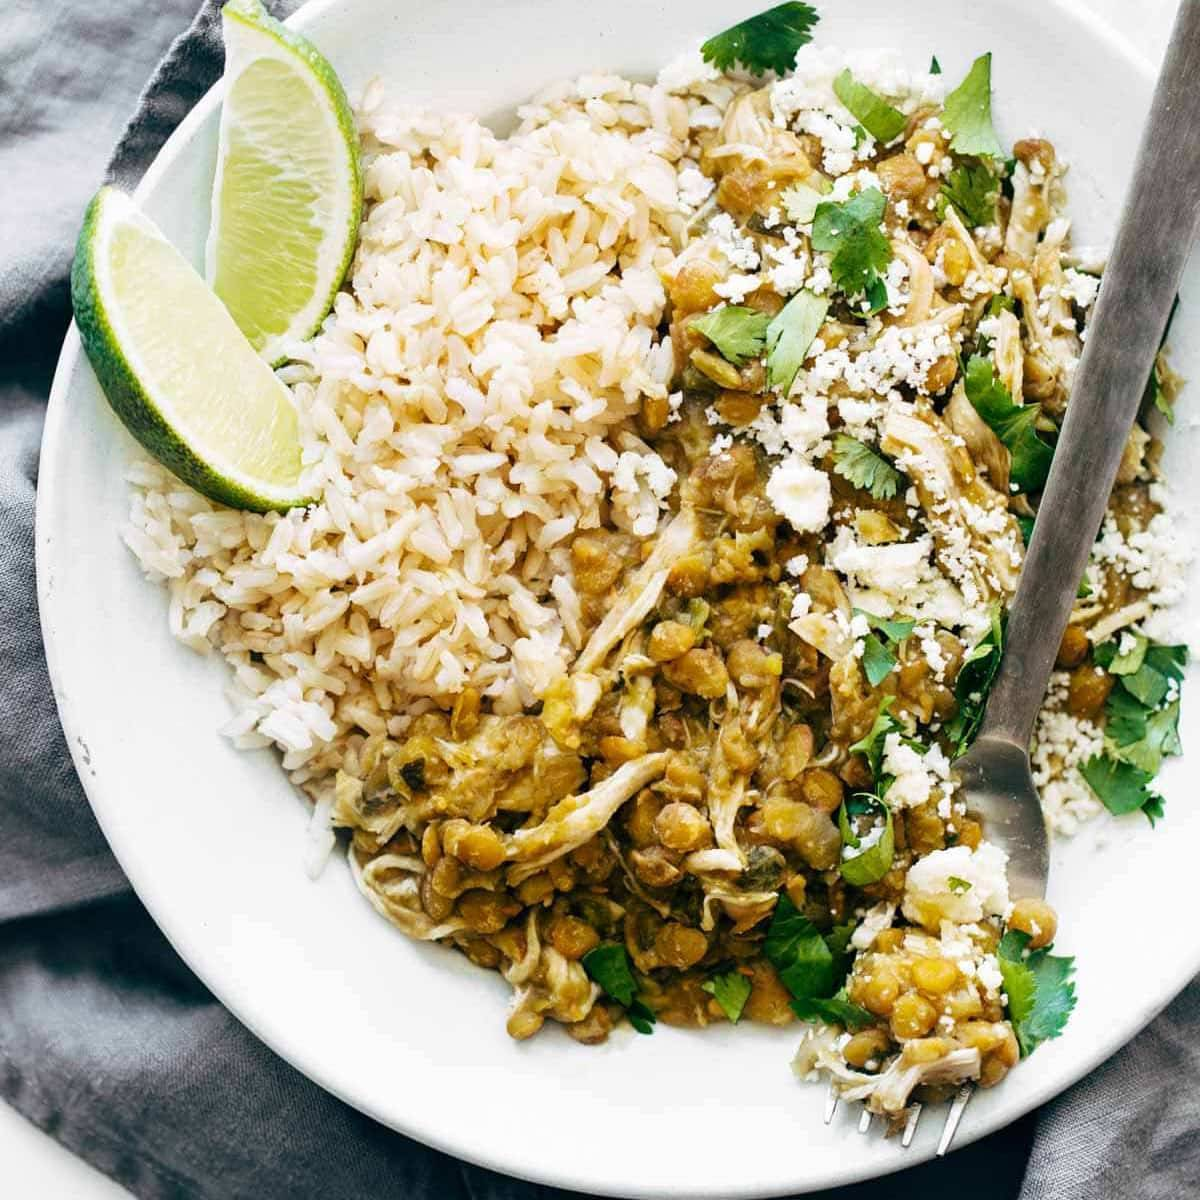 White rice and lentils with shredded chicken, fresh cilantro and quartered lime slices.